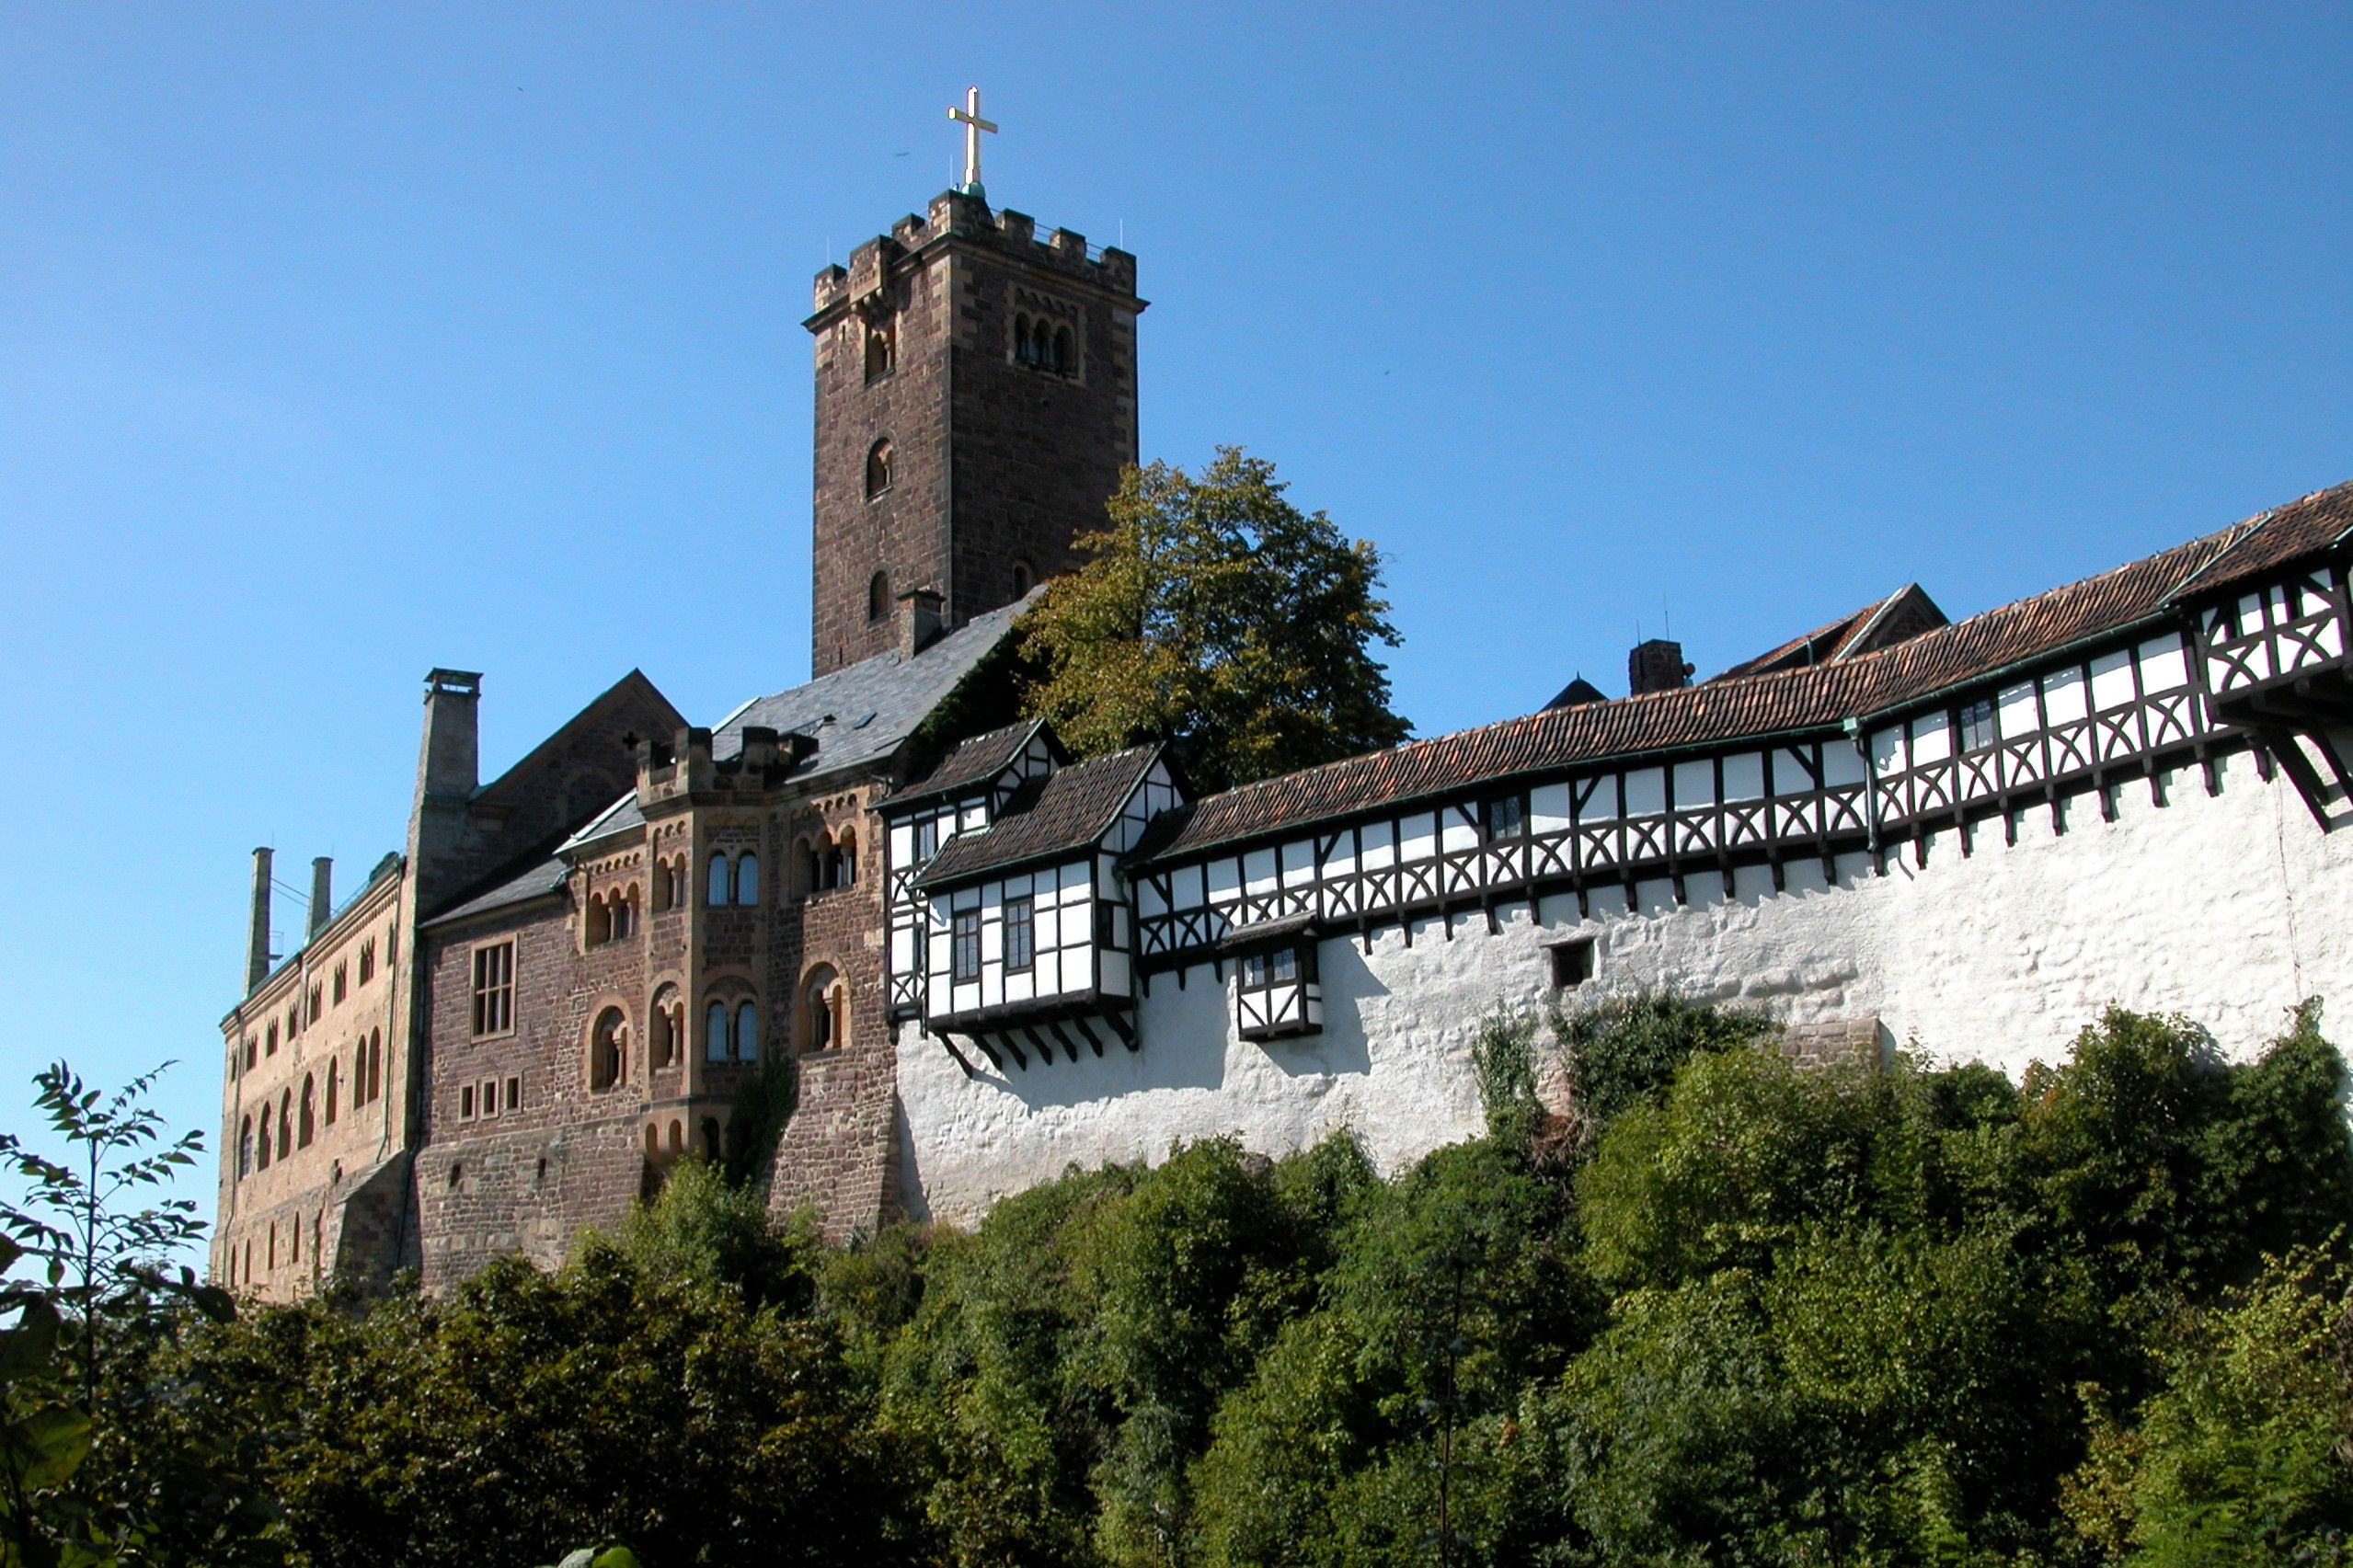 A sunny day at Wartburg Castle, where exiled Martin Luther translated the New Testament into German